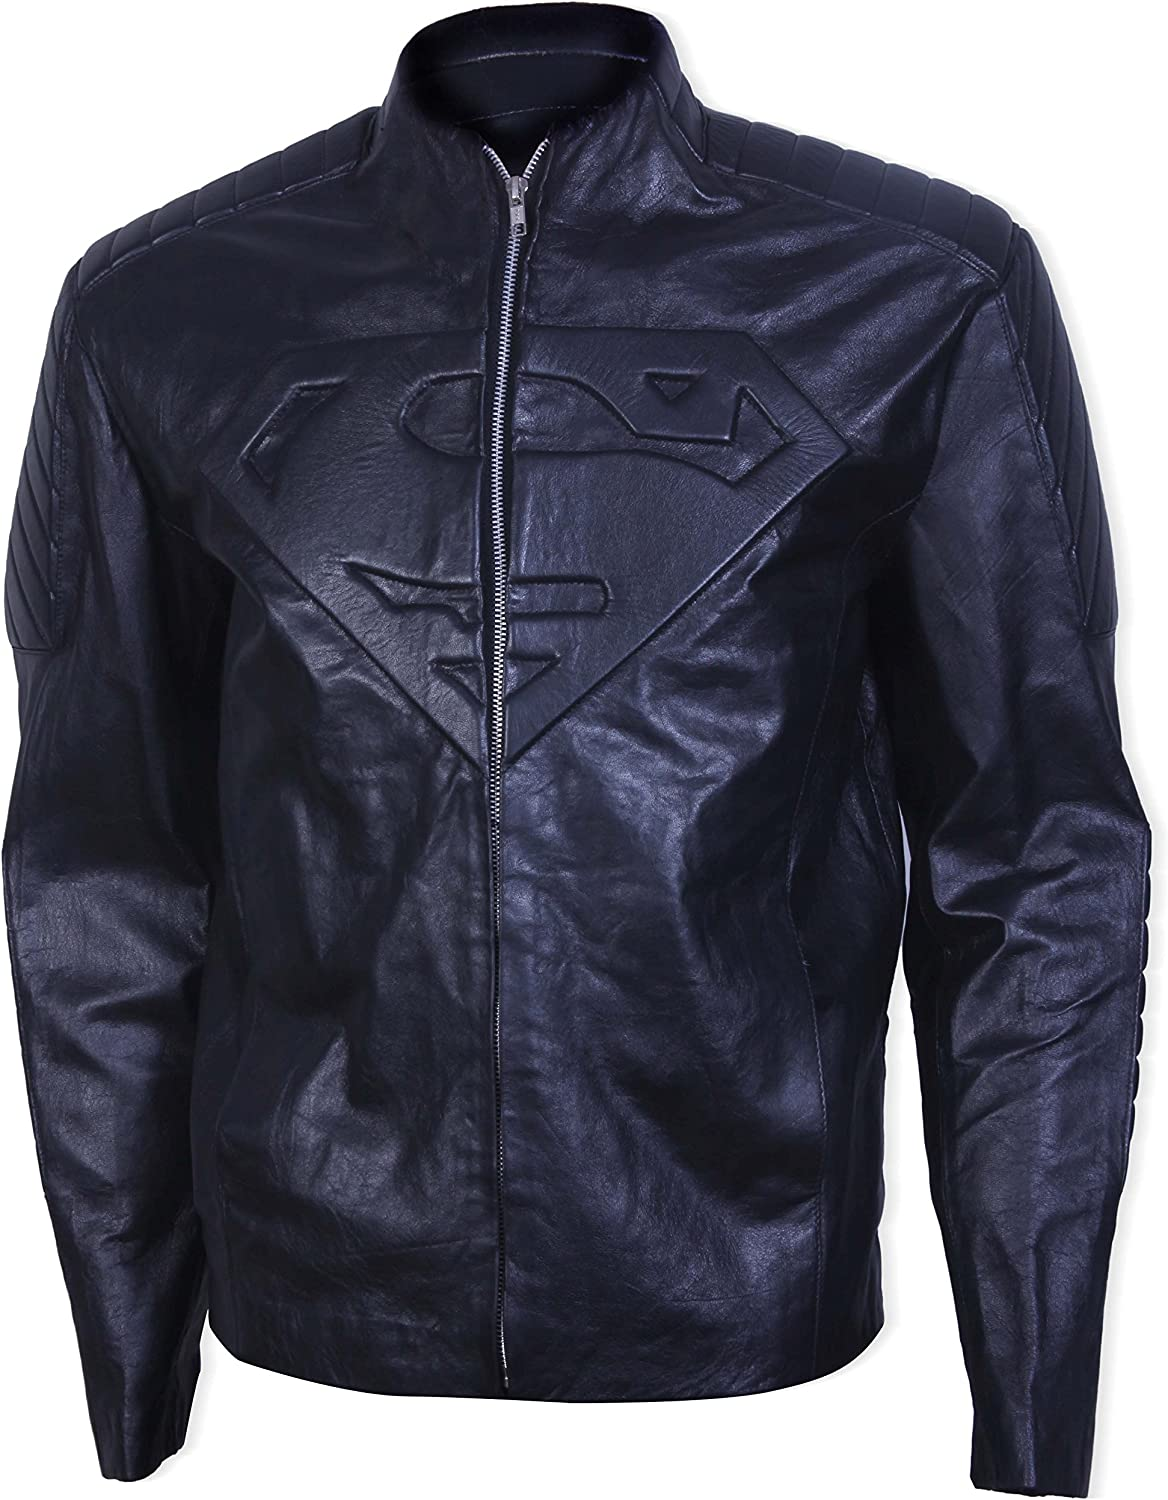 e64c46c6 Mens Henry Cavill Superman Black Faux Leather Jacket 3XS 3XS 3XS 94c99c